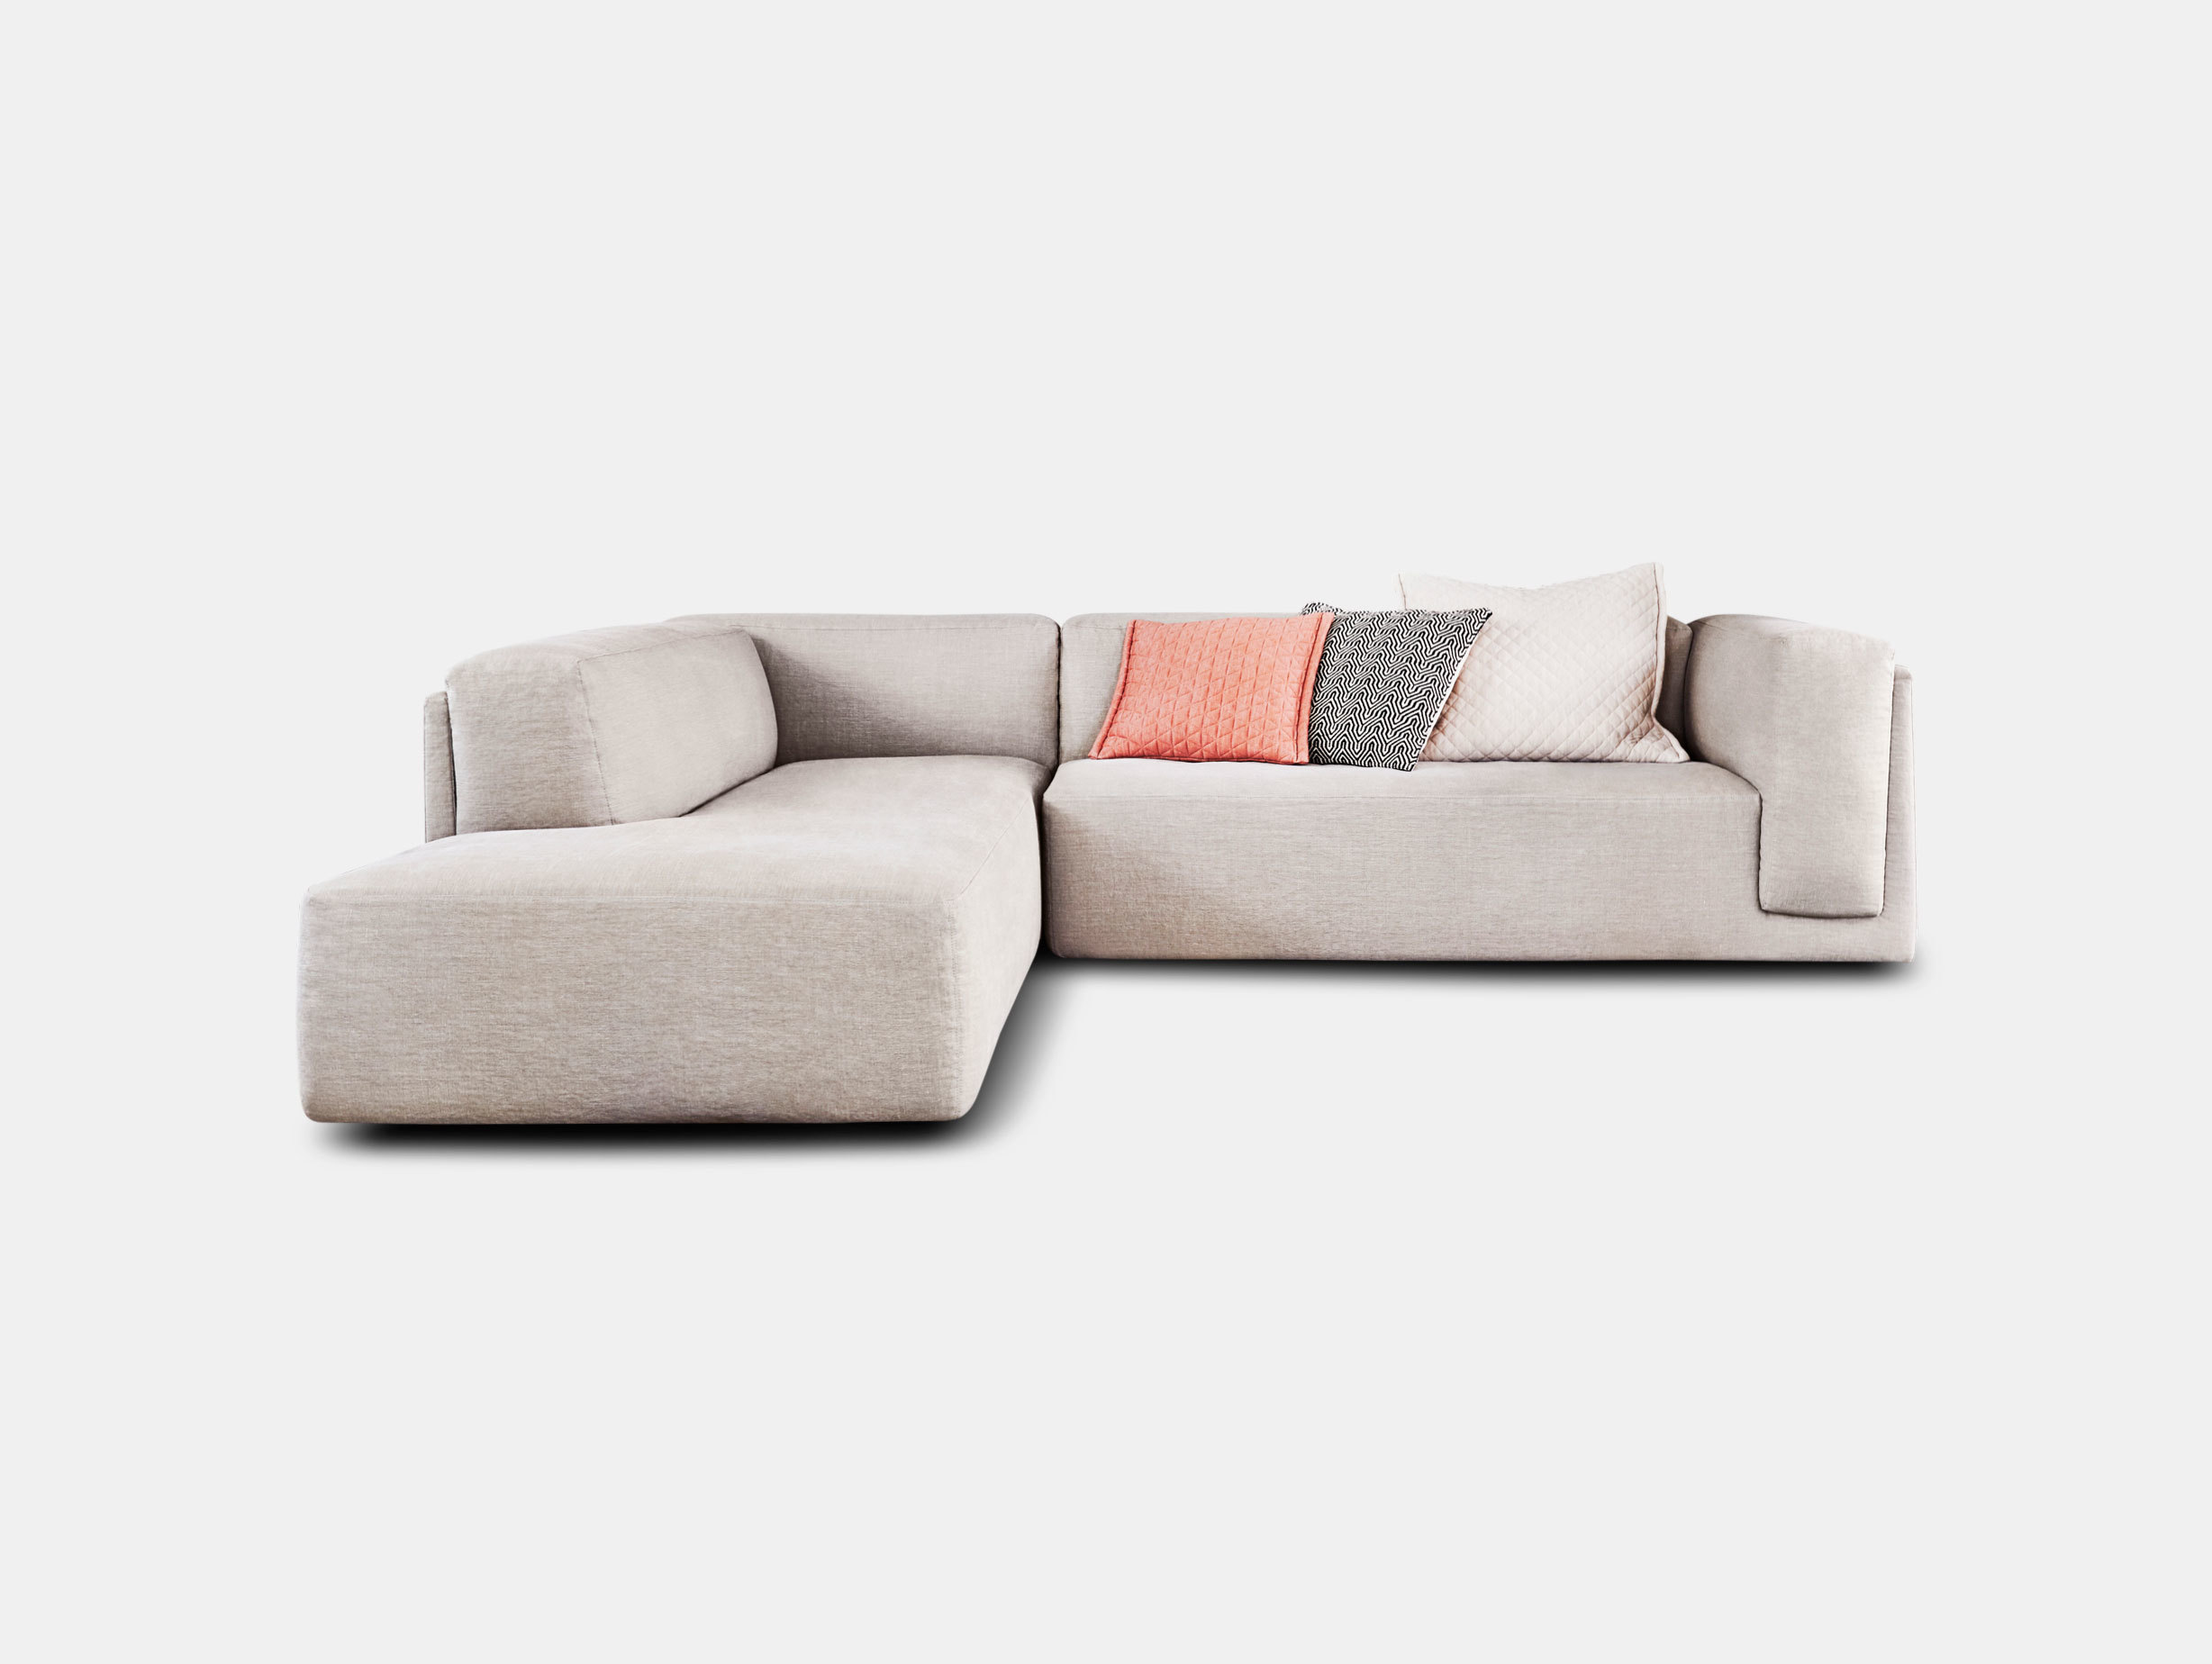 Edge Sofa image 2